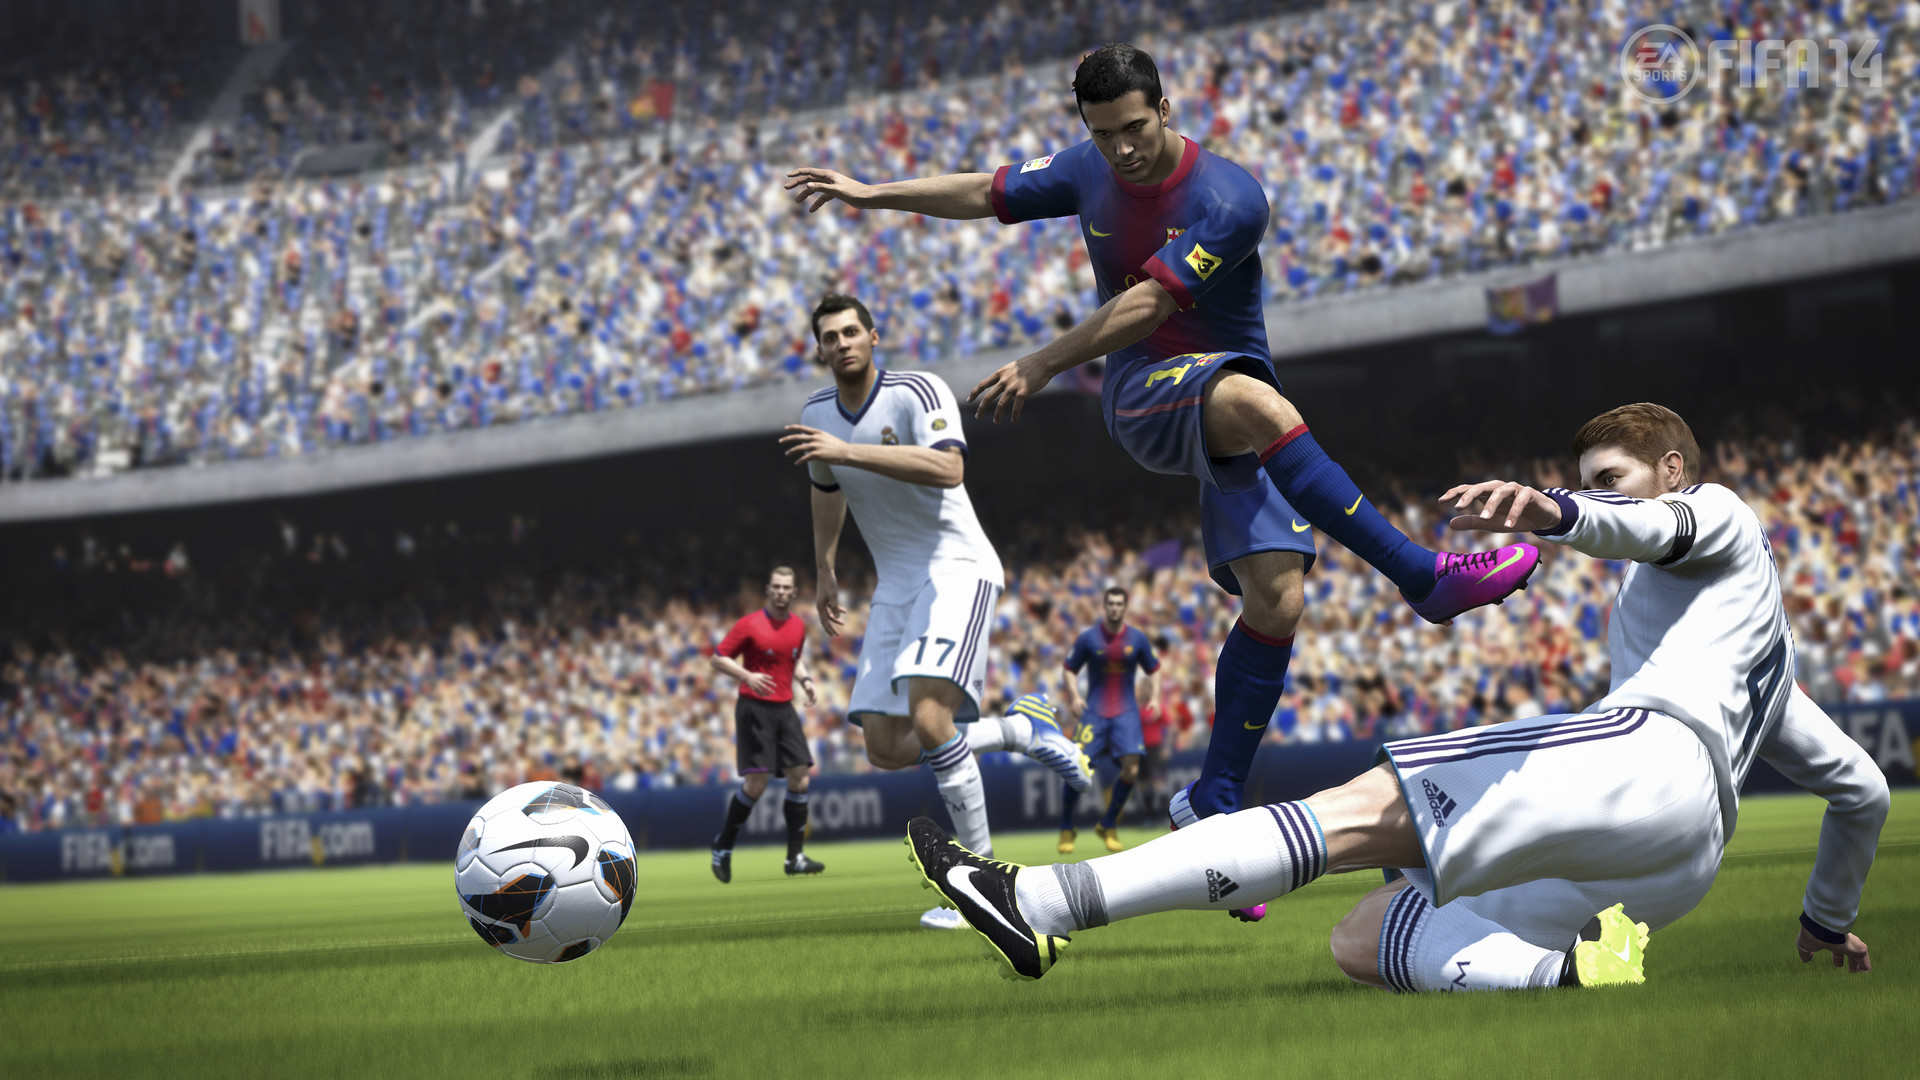 FIFA 14 Next-Gen Version On PS4 Earns a 4.5 Out Of 5 Rating: Product Review